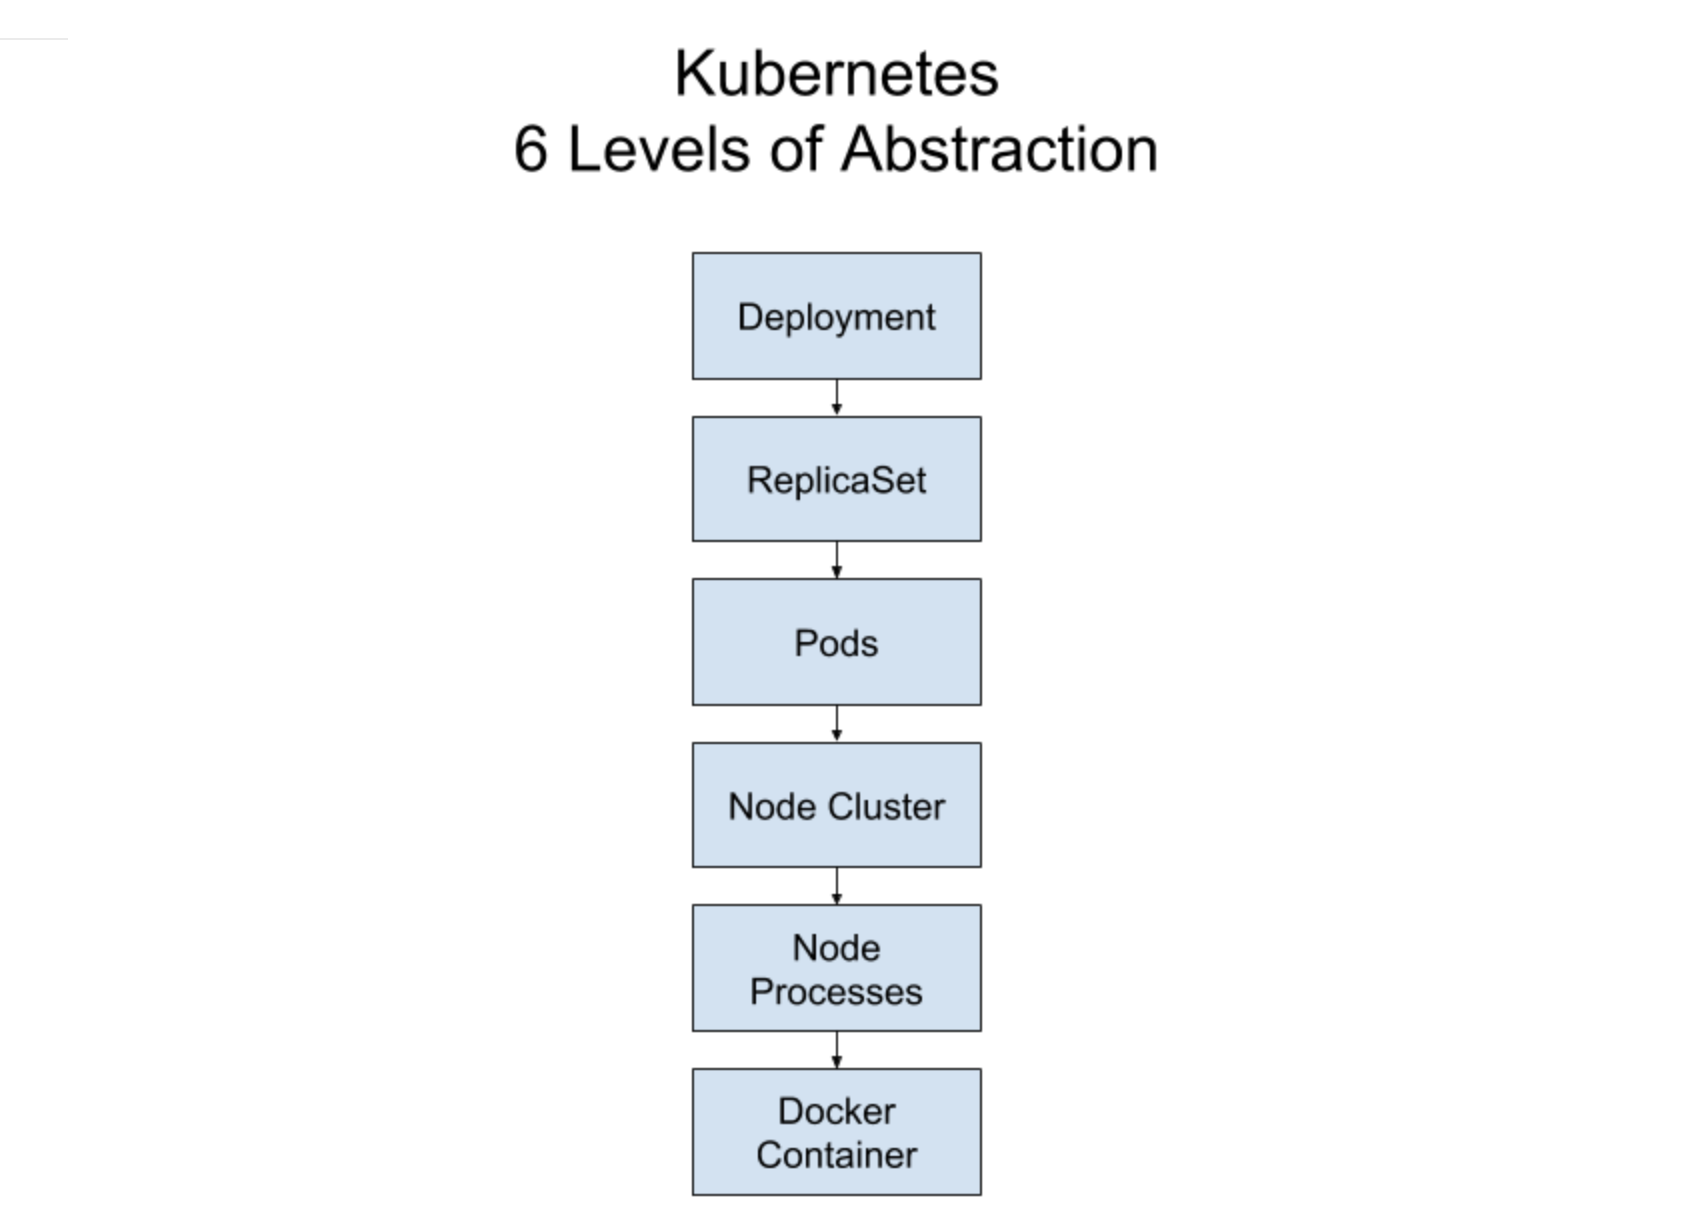 Kubernetes abstractions for a Deployment.